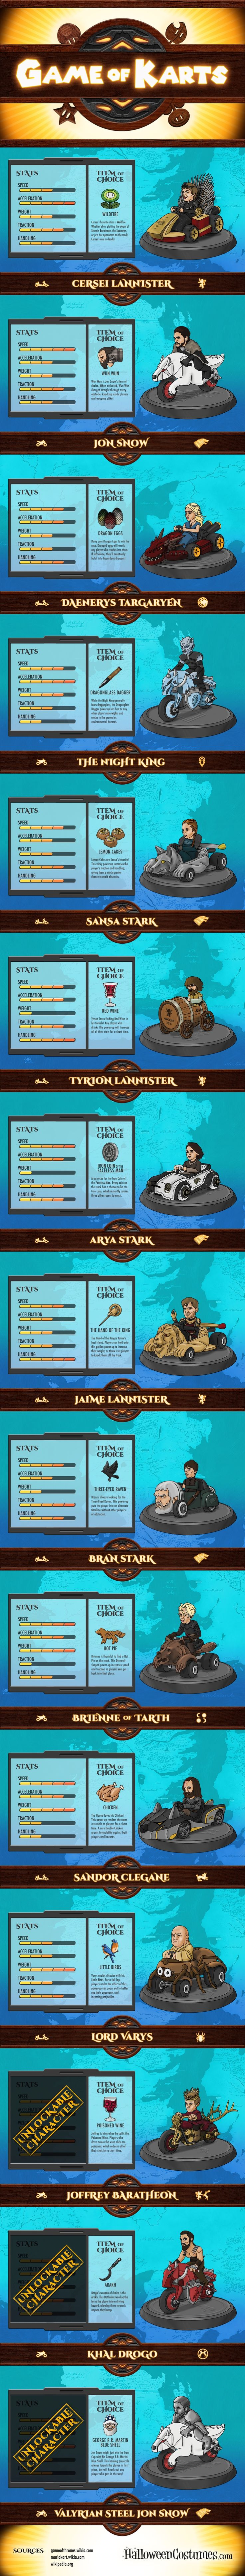 'Game Of Thrones' Characters Get A 'Mario Kart' Makeover – The Roosevelts